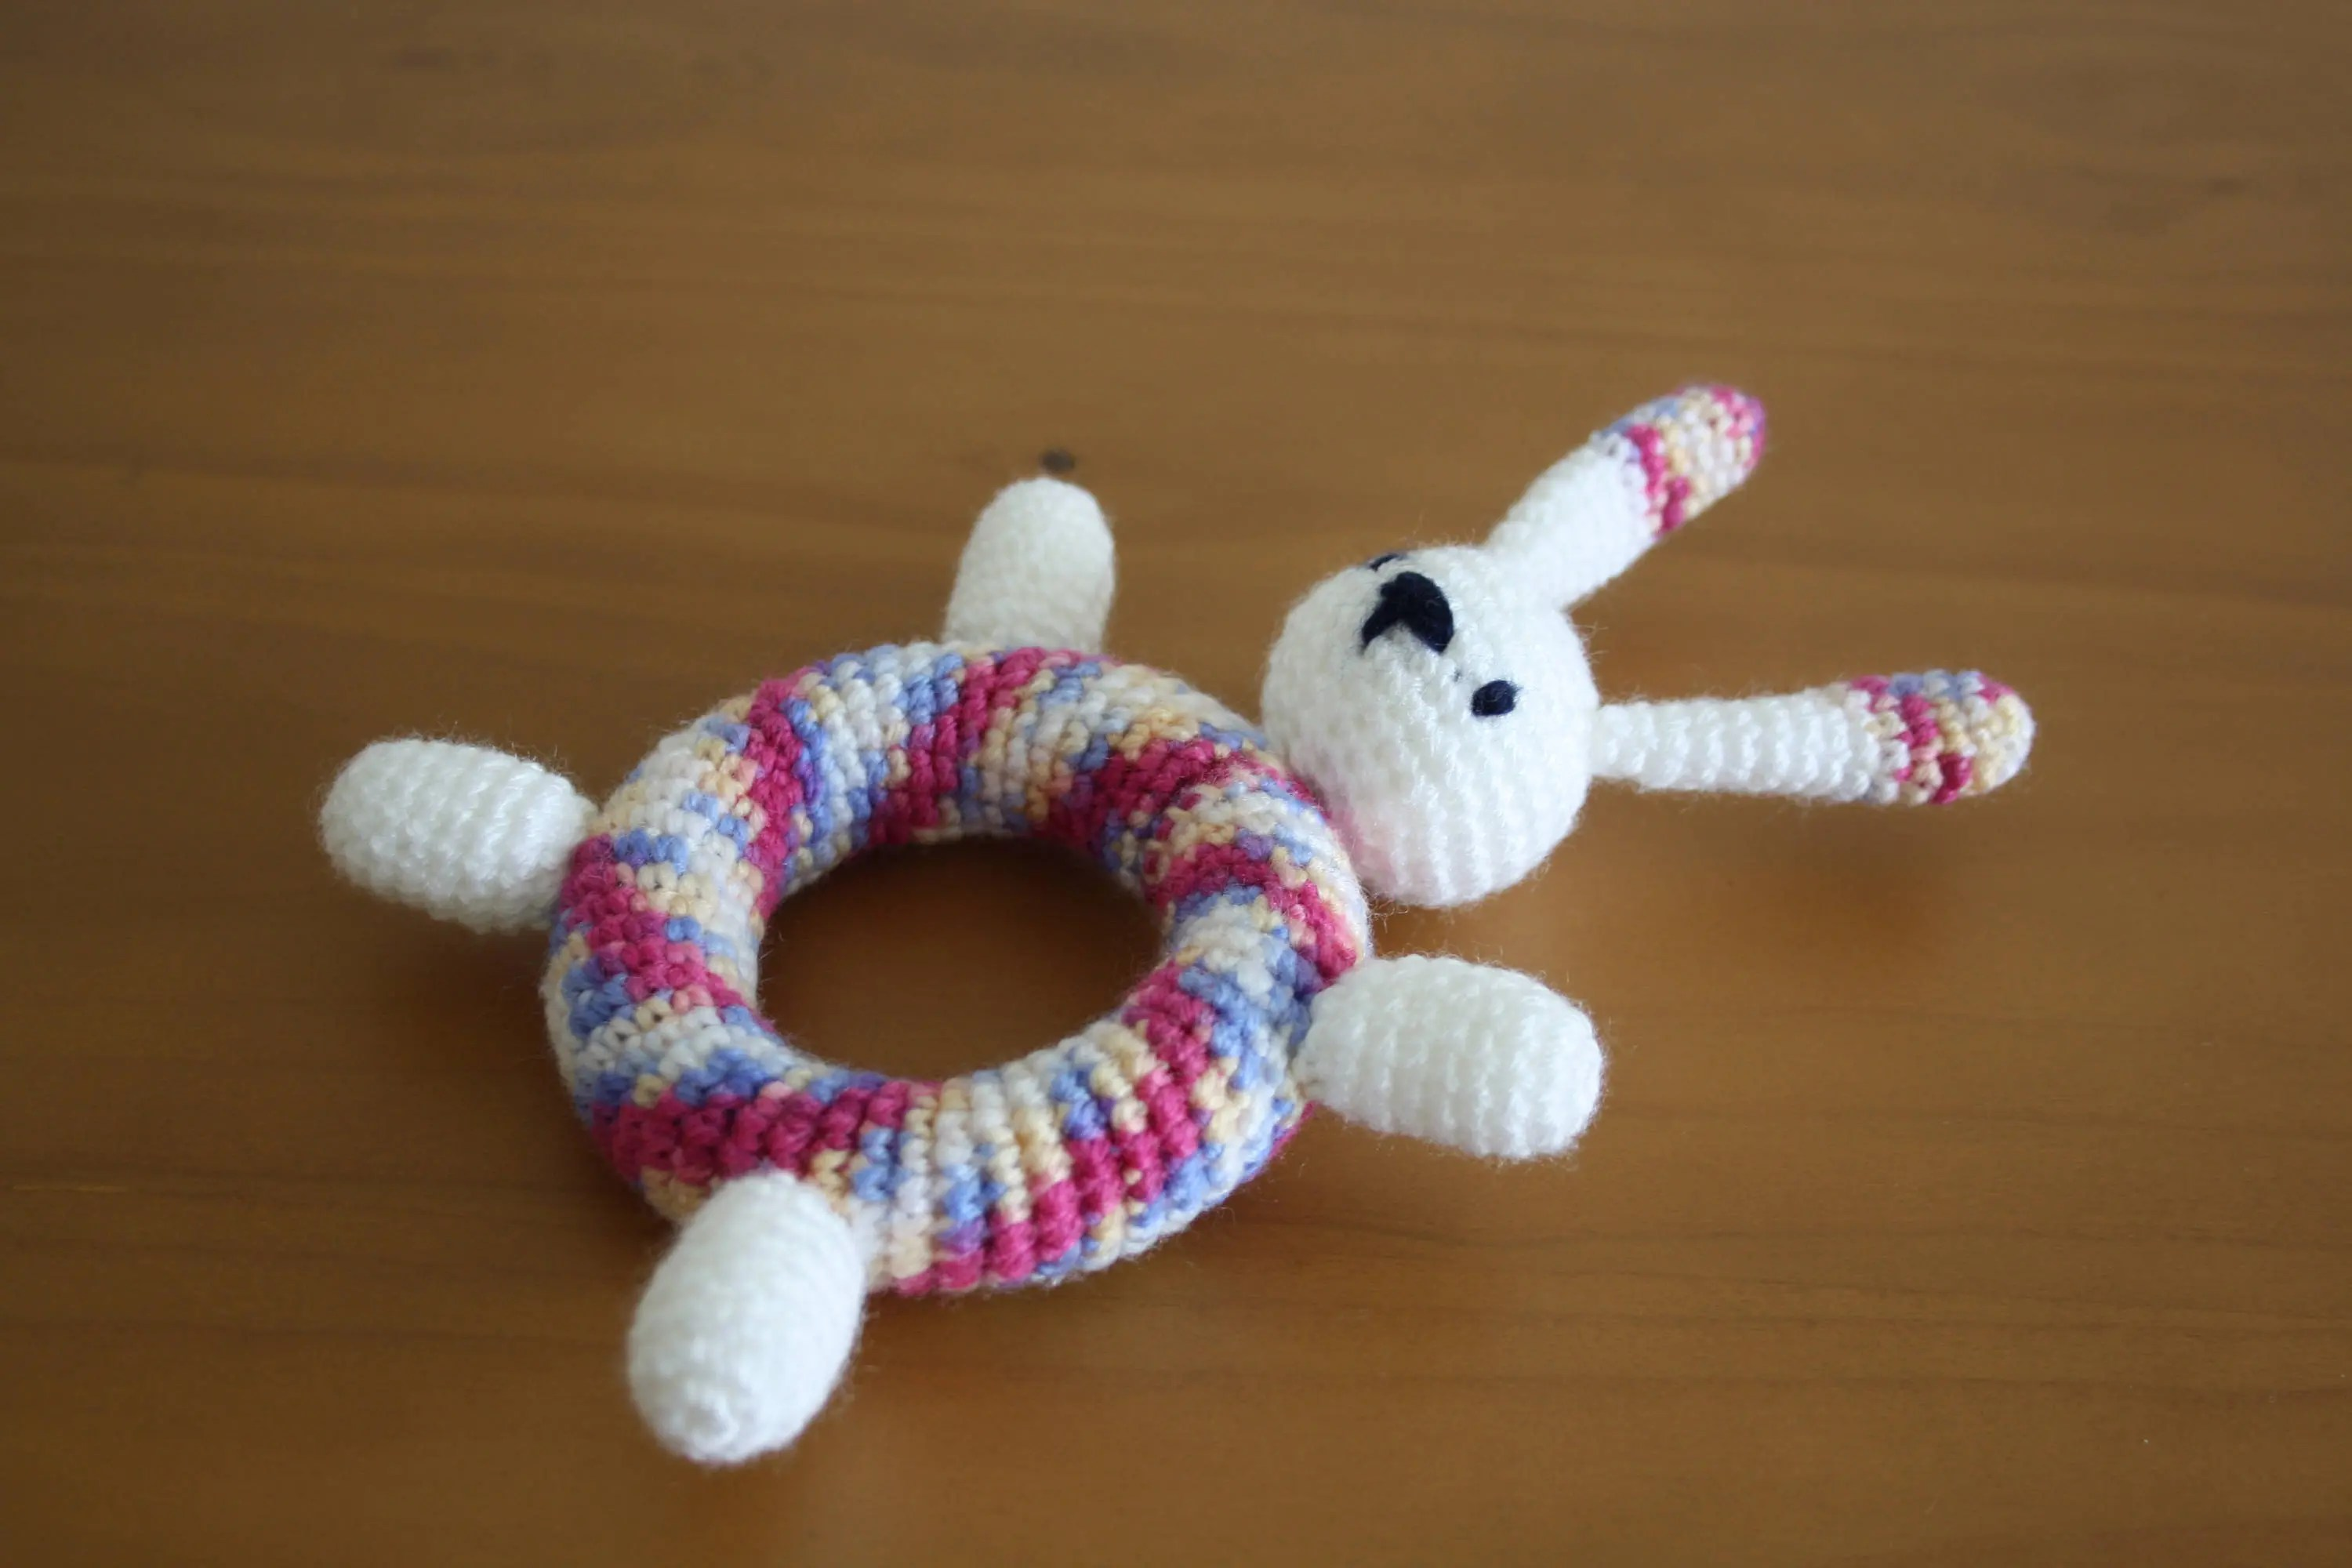 Crochet Bunny Rattle                                                                    MoniqueBoutiqueMB                               5 out of 5 stars                                                                                                                                                                                                                                                          (154)                                                      CA$17.77